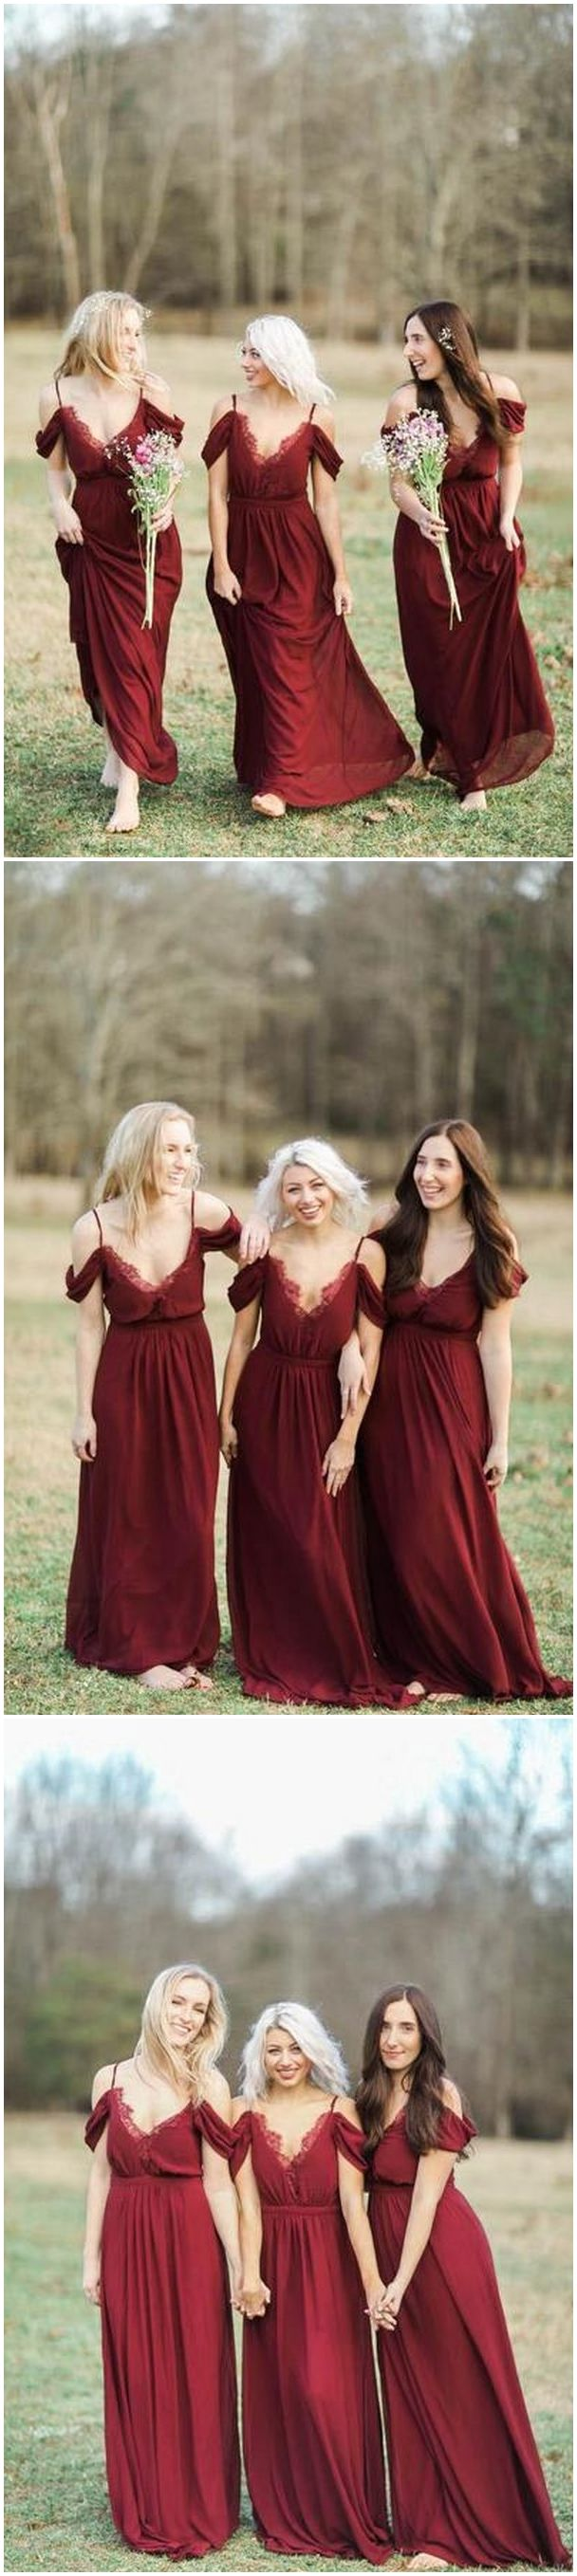 55 Burgundy Bridesmaid Dresses for Fall Winter Weddings / http://www.himisspuff.com/burgundy-bridesmaid-dresses/